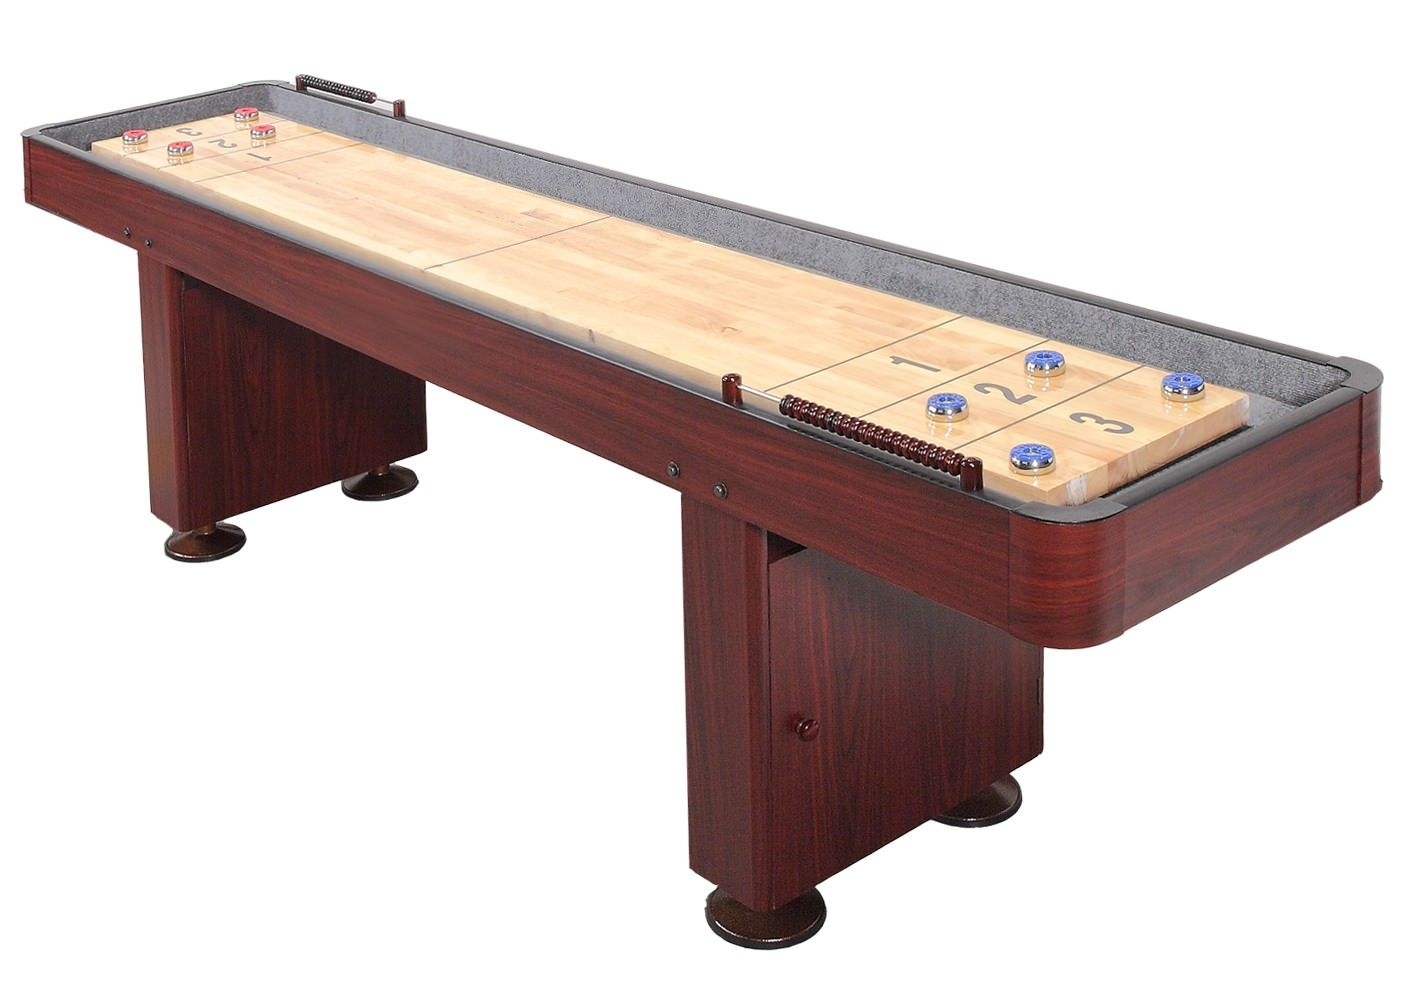 Carmelli NG1214 - 12 Foot Deluxe Shuffleboard Table - Dark Cherry